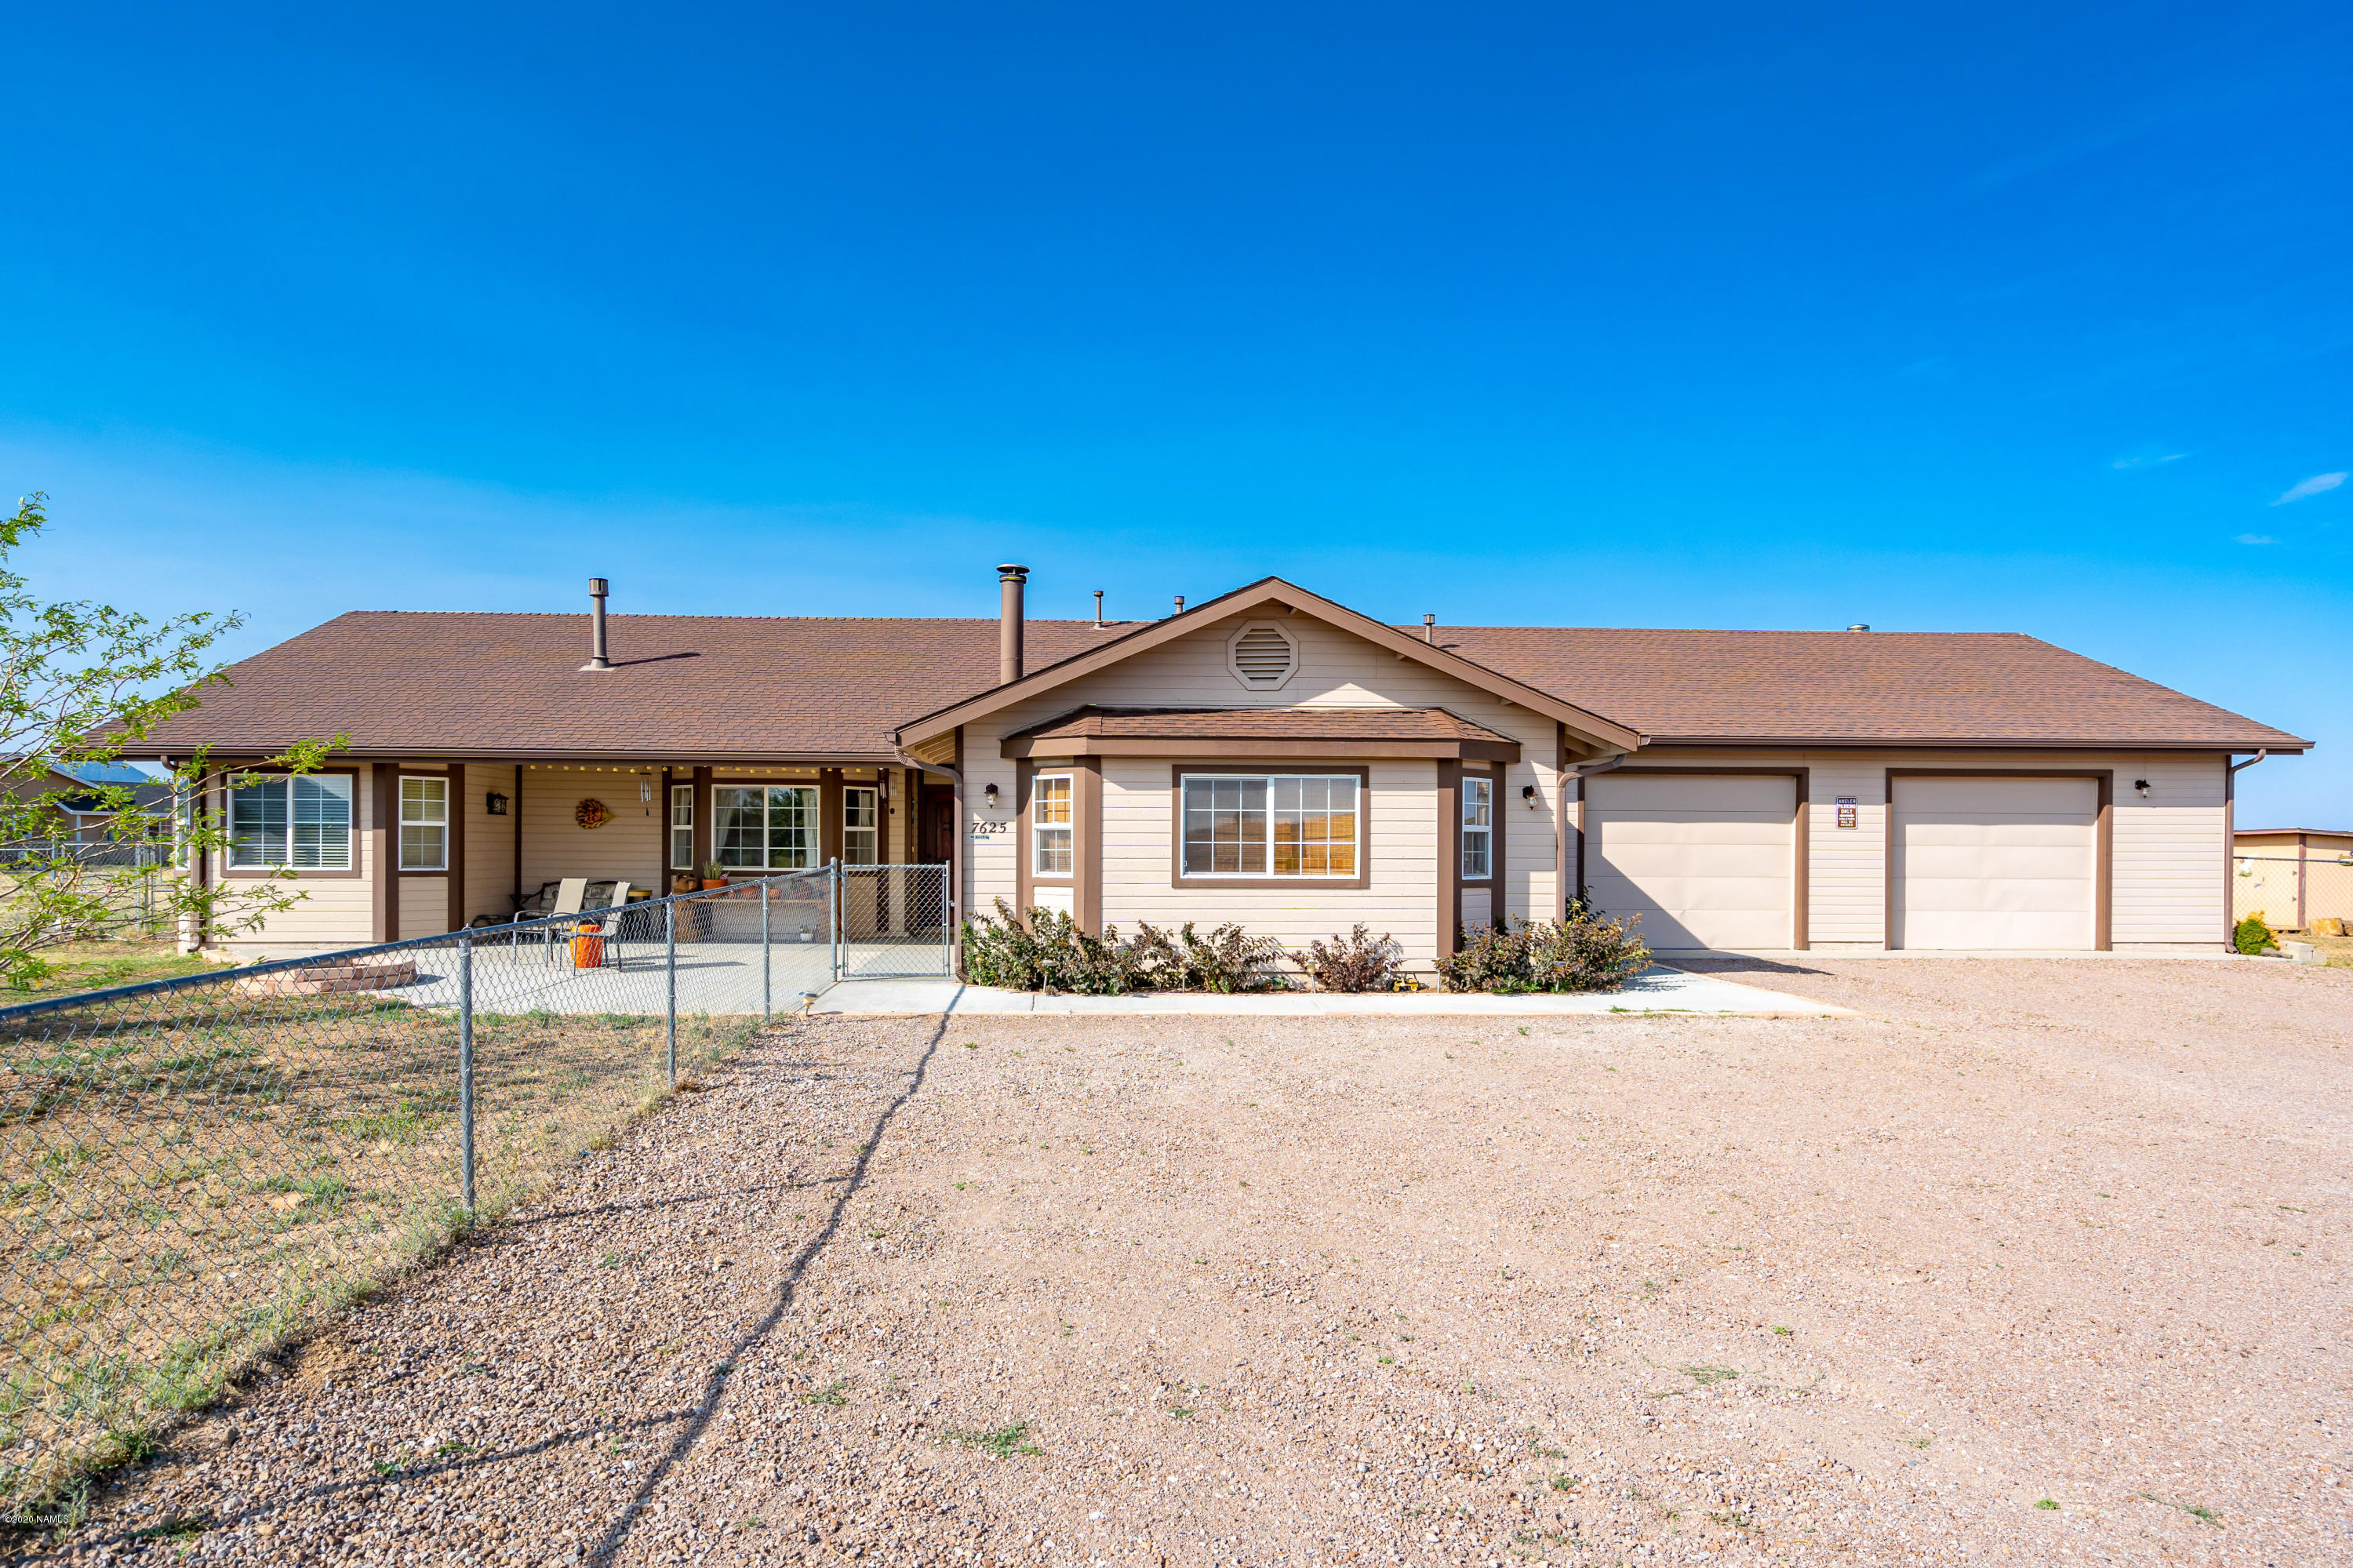 Photo of 7625 E Dalton Road, Flagstaff, AZ 86004